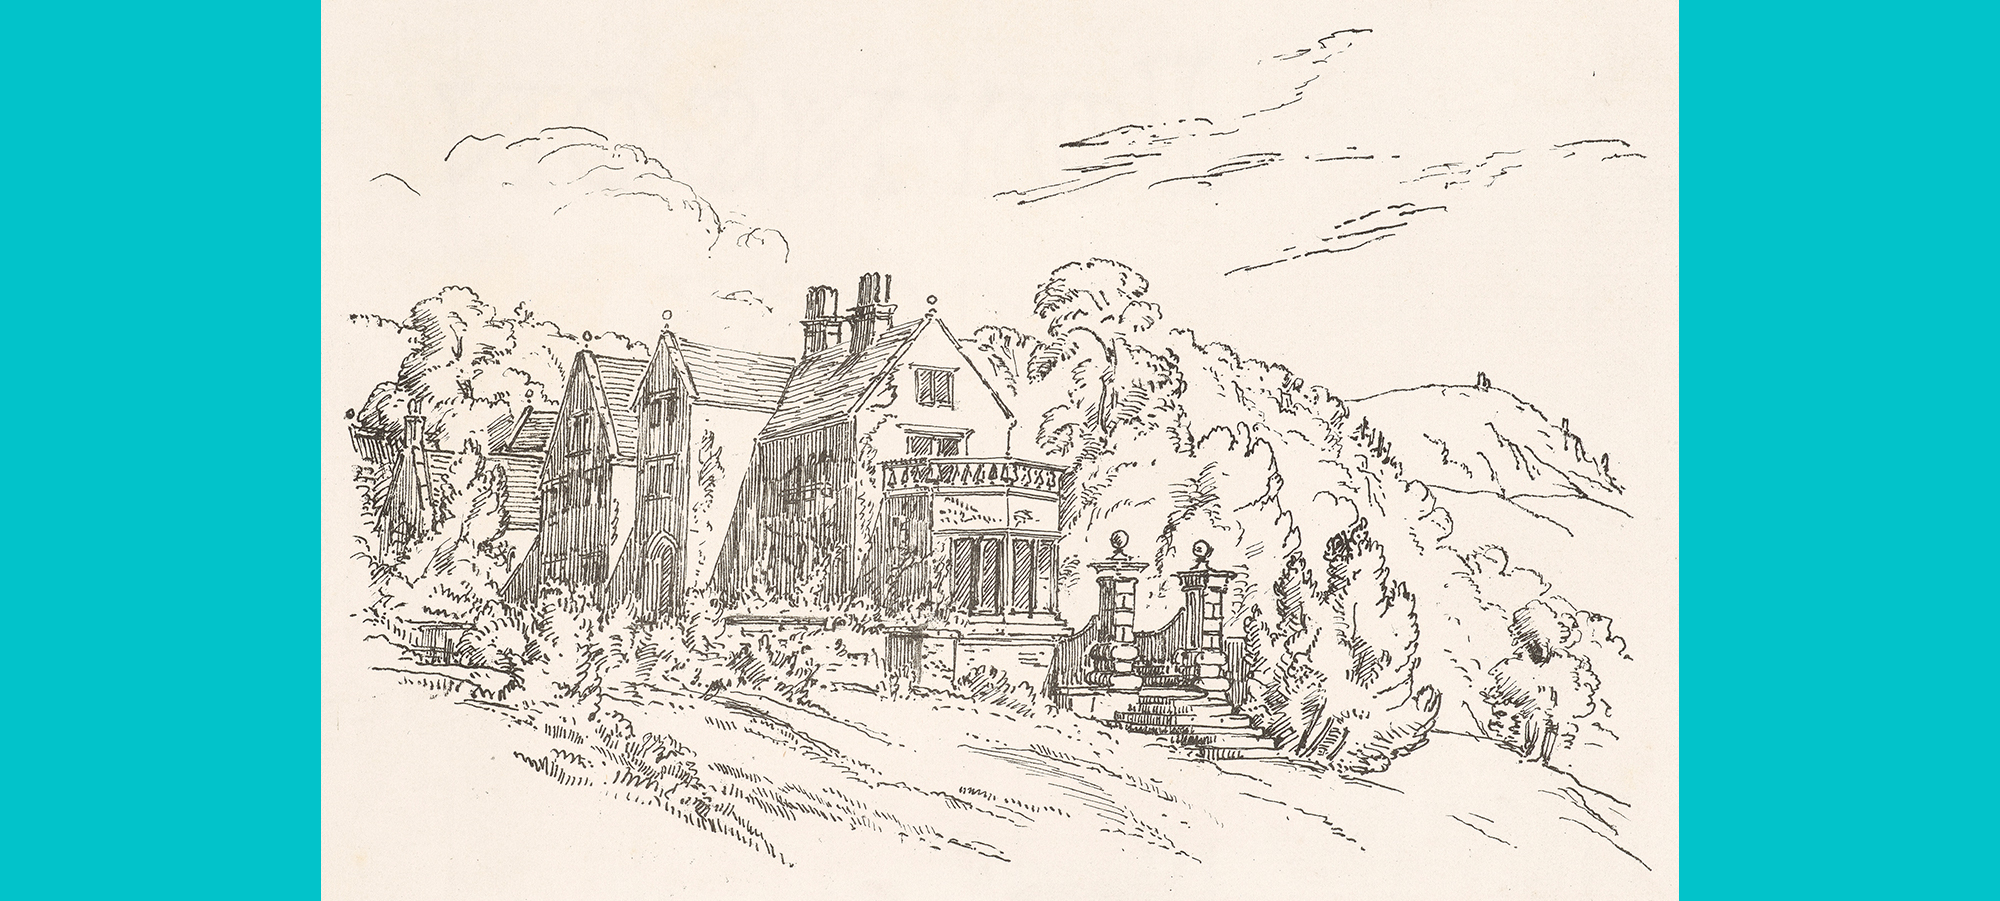 Print sketch of a house with surrounding trees